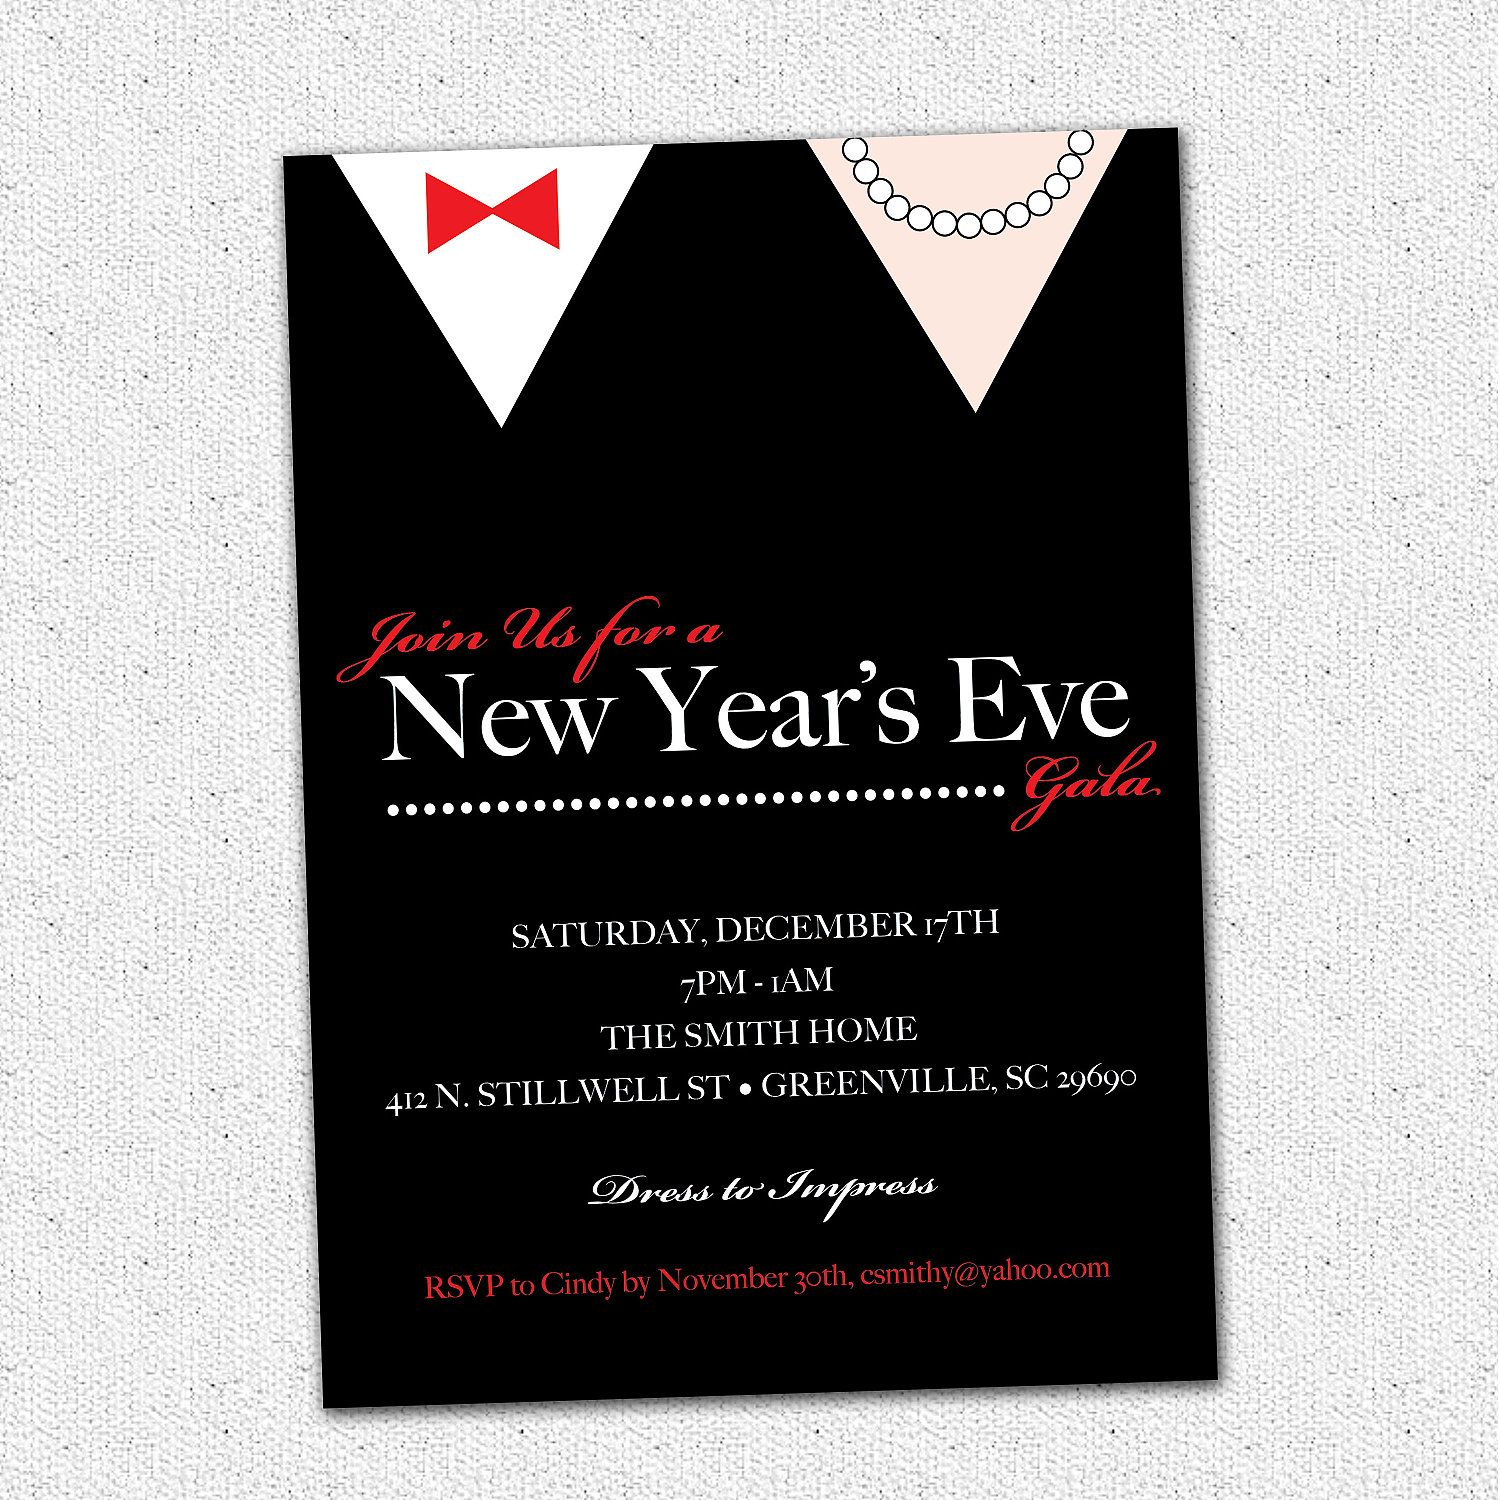 New years eve gala ball celebration bash party invitation black new years eve gala ball celebration bash party invitation black tie event formal printable stopboris Gallery